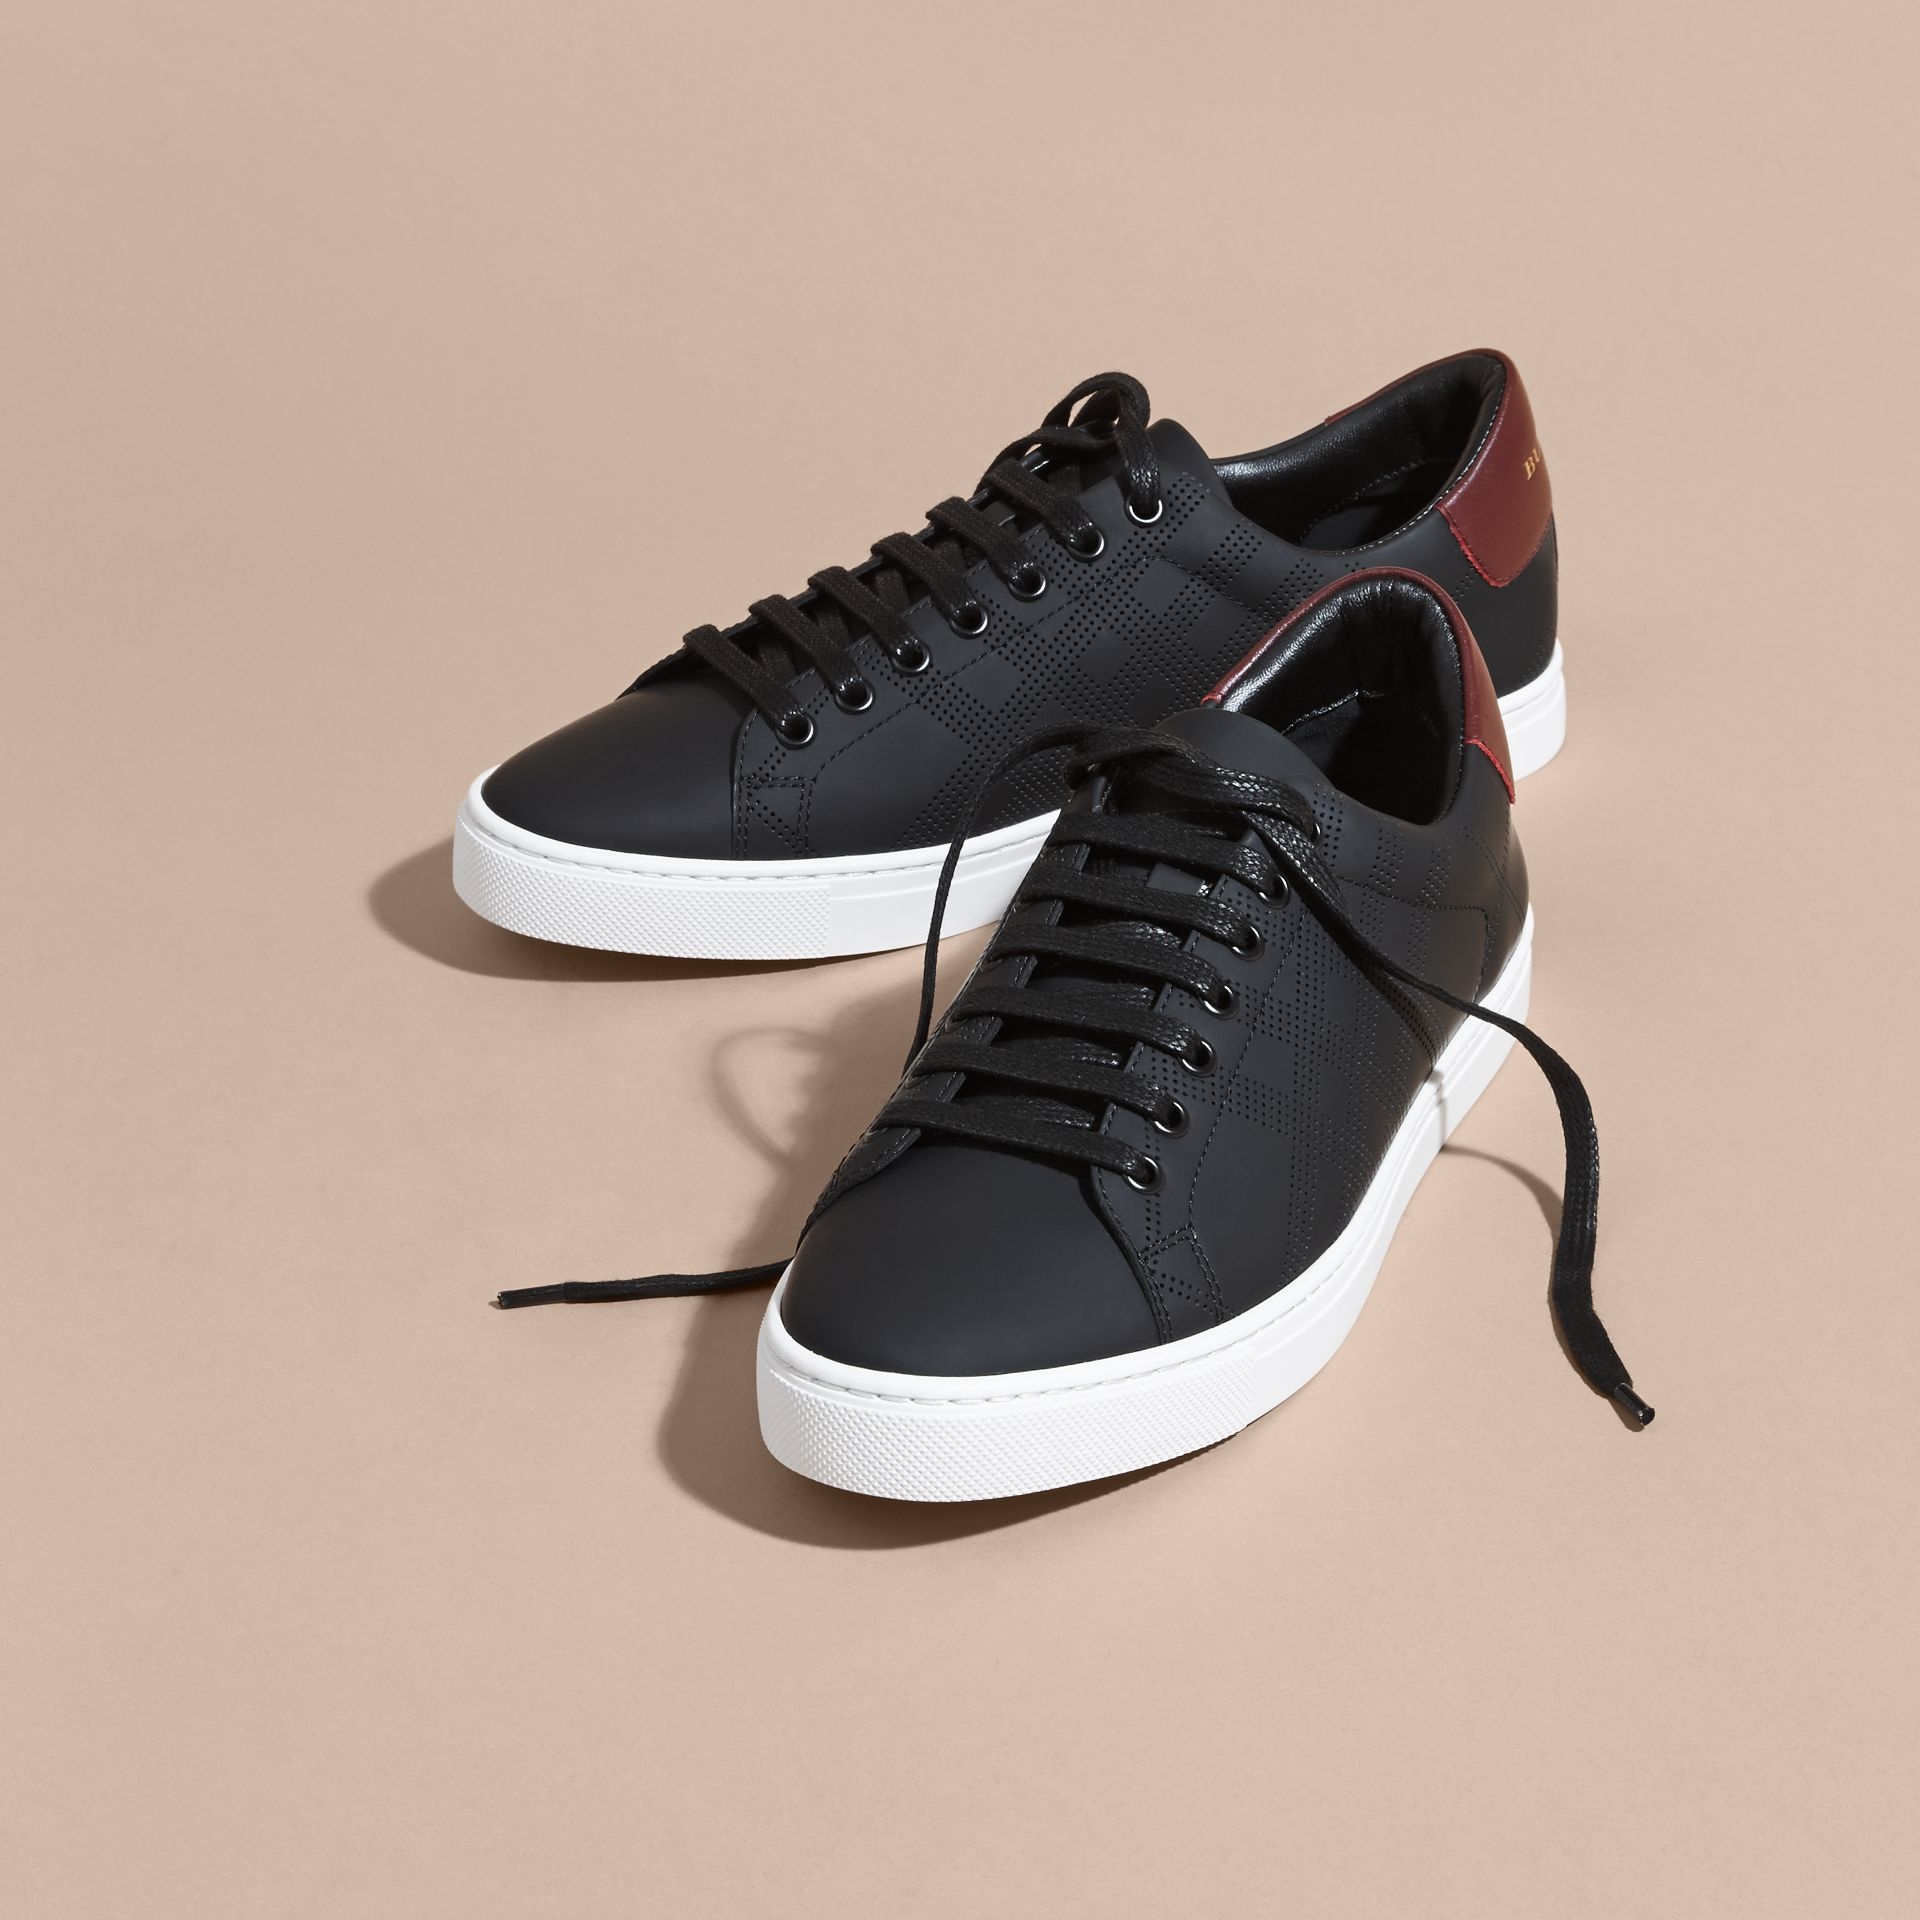 Perforated Check Leather Trainers Black/deep Claret Melange - gallery image 3